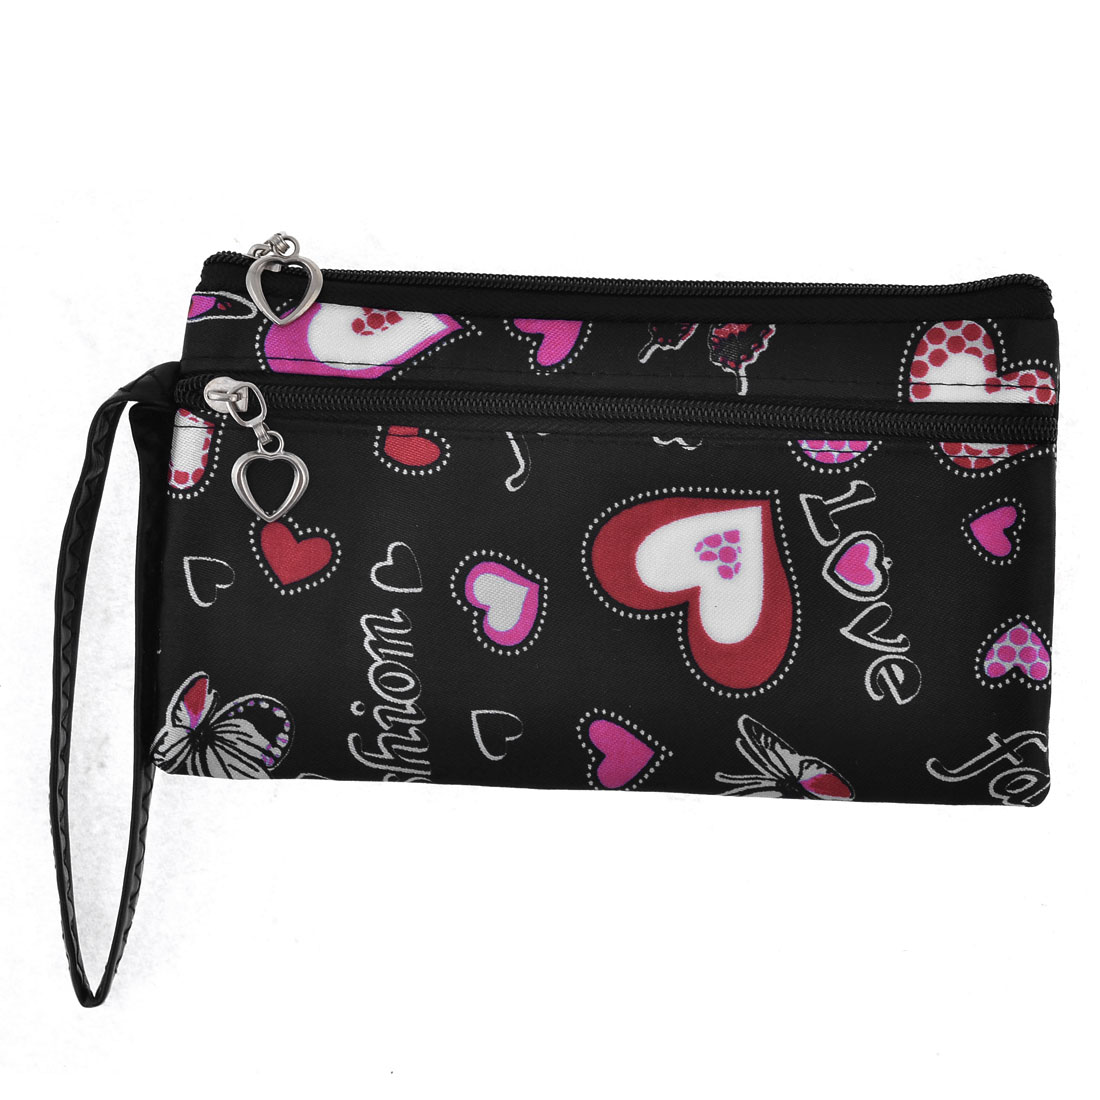 Black Zippered Heart Printed Wrist Bag W Hand Strap for Girls